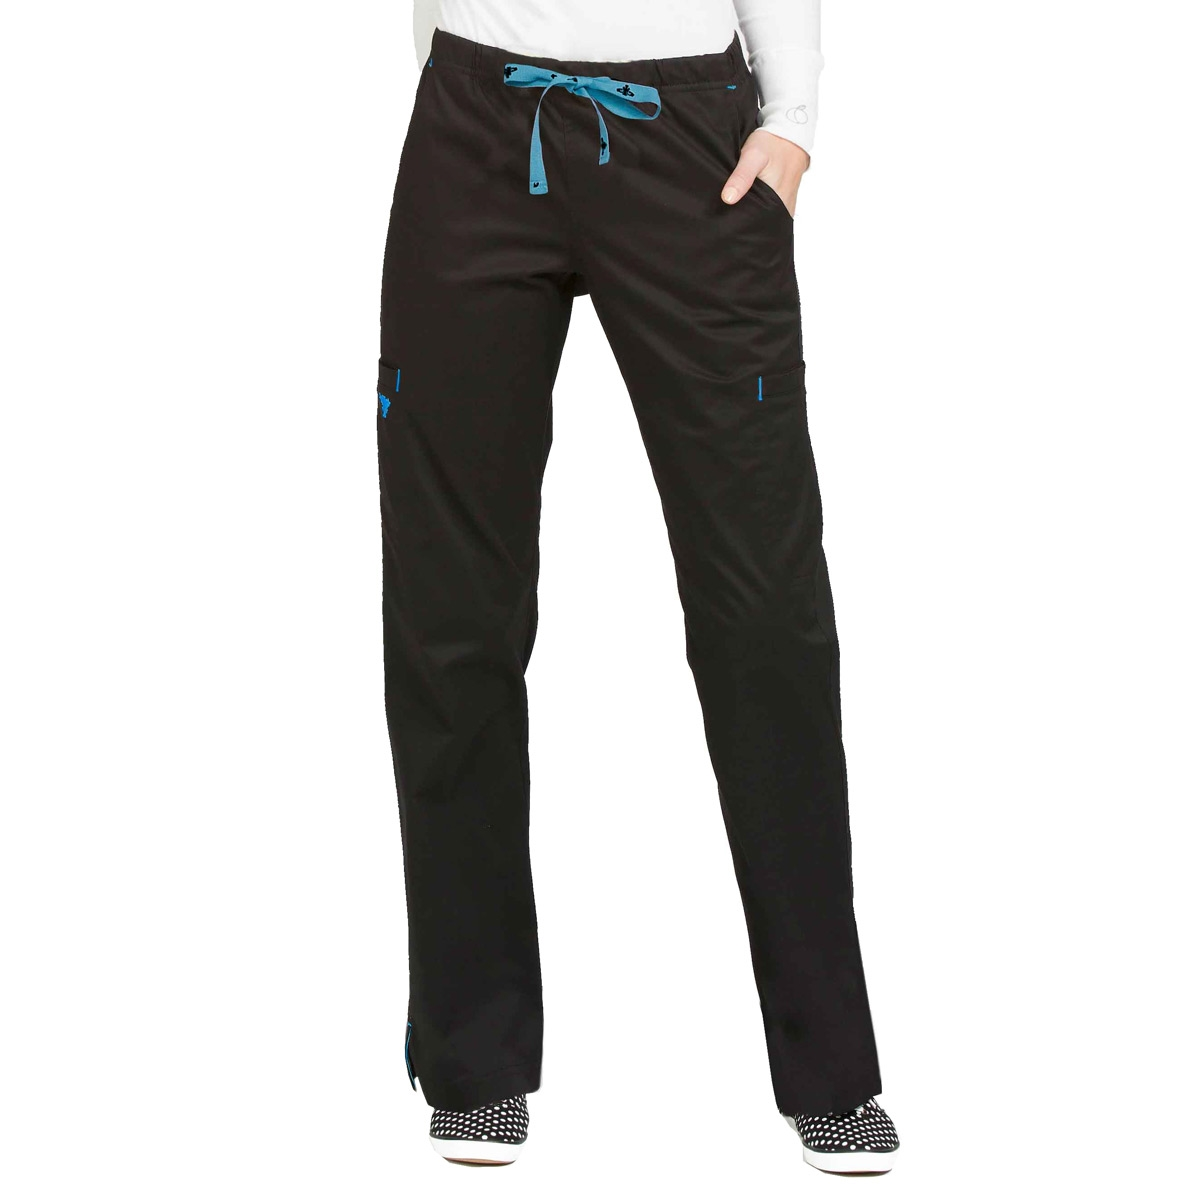 0a2903e5639 Med Couture Gigi Pant in Black/ Pacific | Scrub Pants